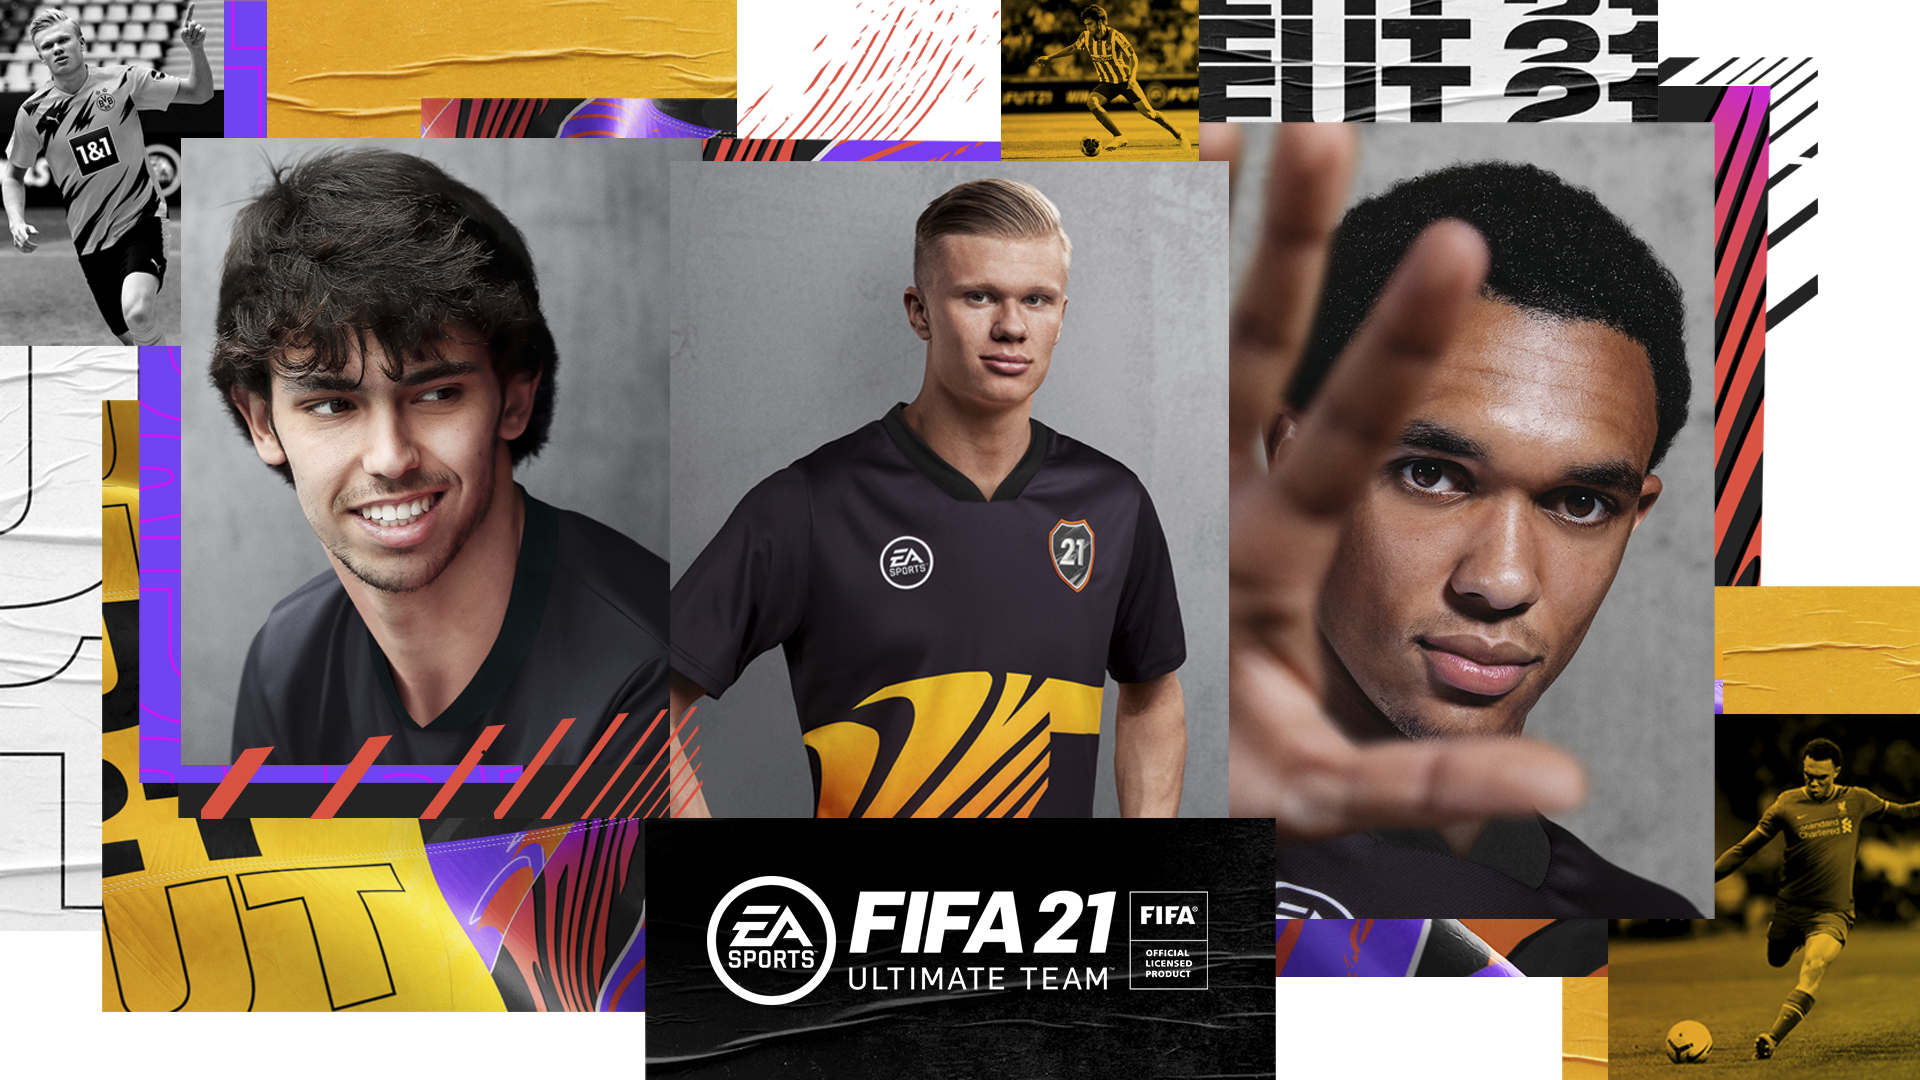 FIFA Ultimate Team 21 - section art